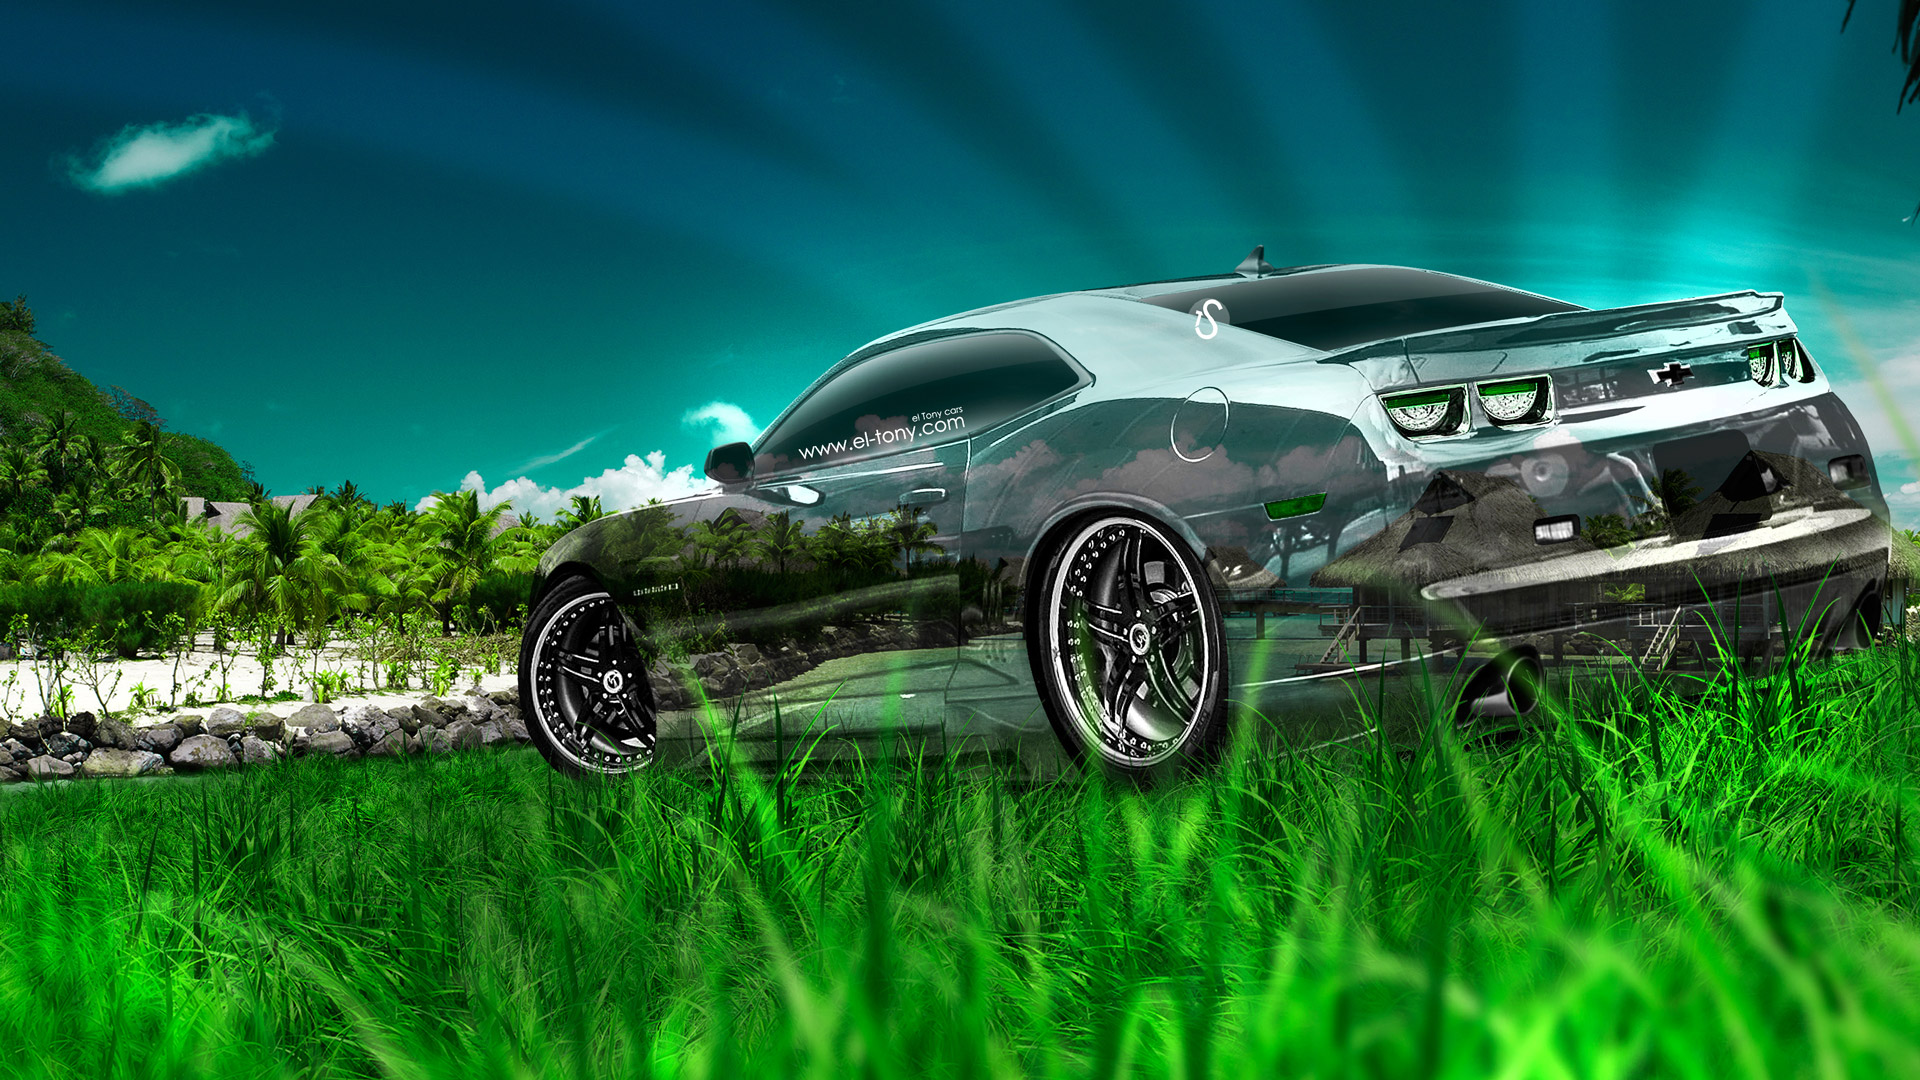 Chevrolet-Camaro-Muscle-Crystal-Nature-Car-2014-Green-Grass-Sea-HD-Wallpapers-design-by-Tony-Kokhan-[www.el-tony.com]